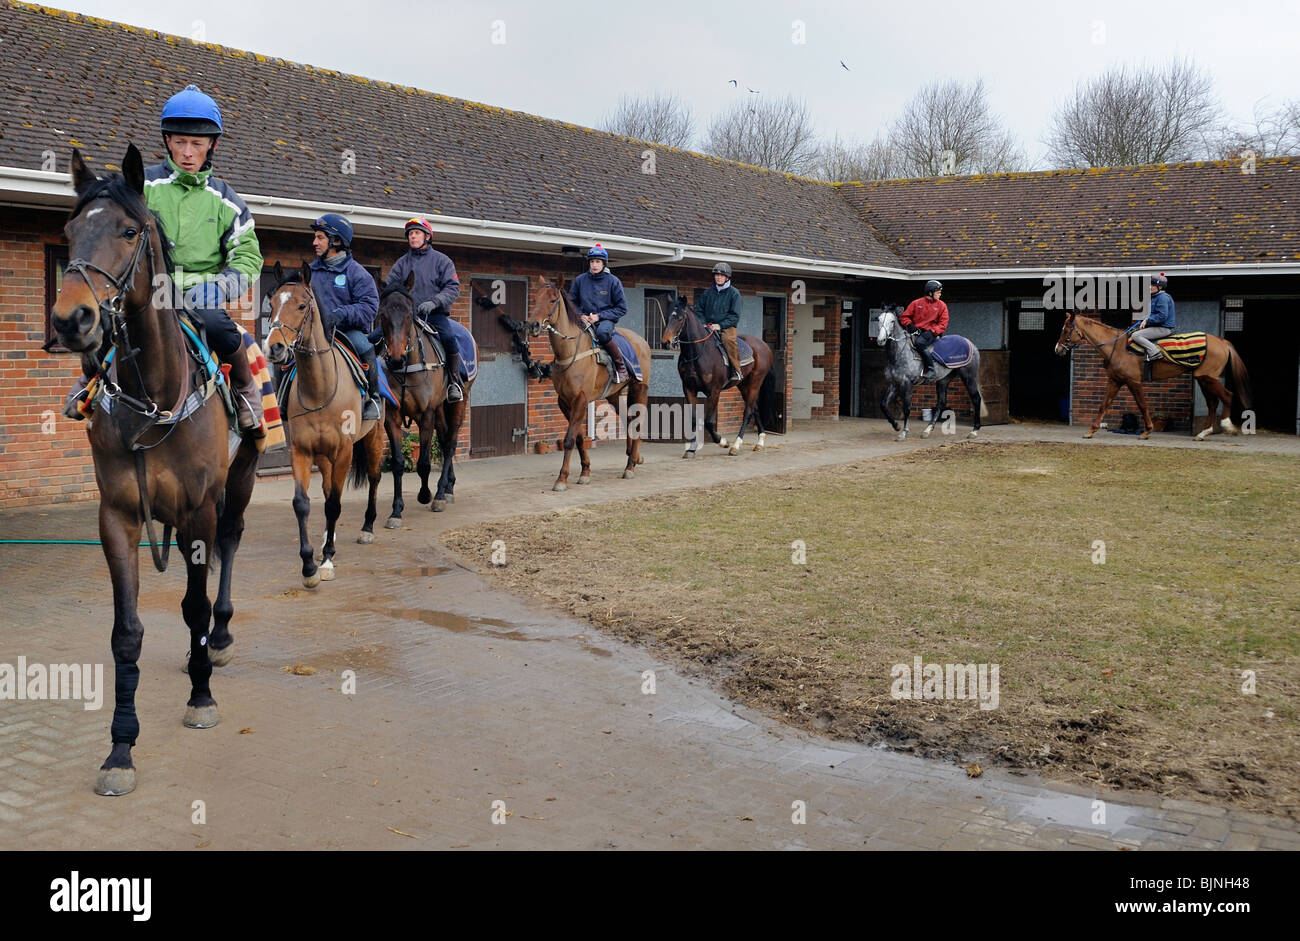 Racehorses leaving the stables to go on a training run - Stock Image